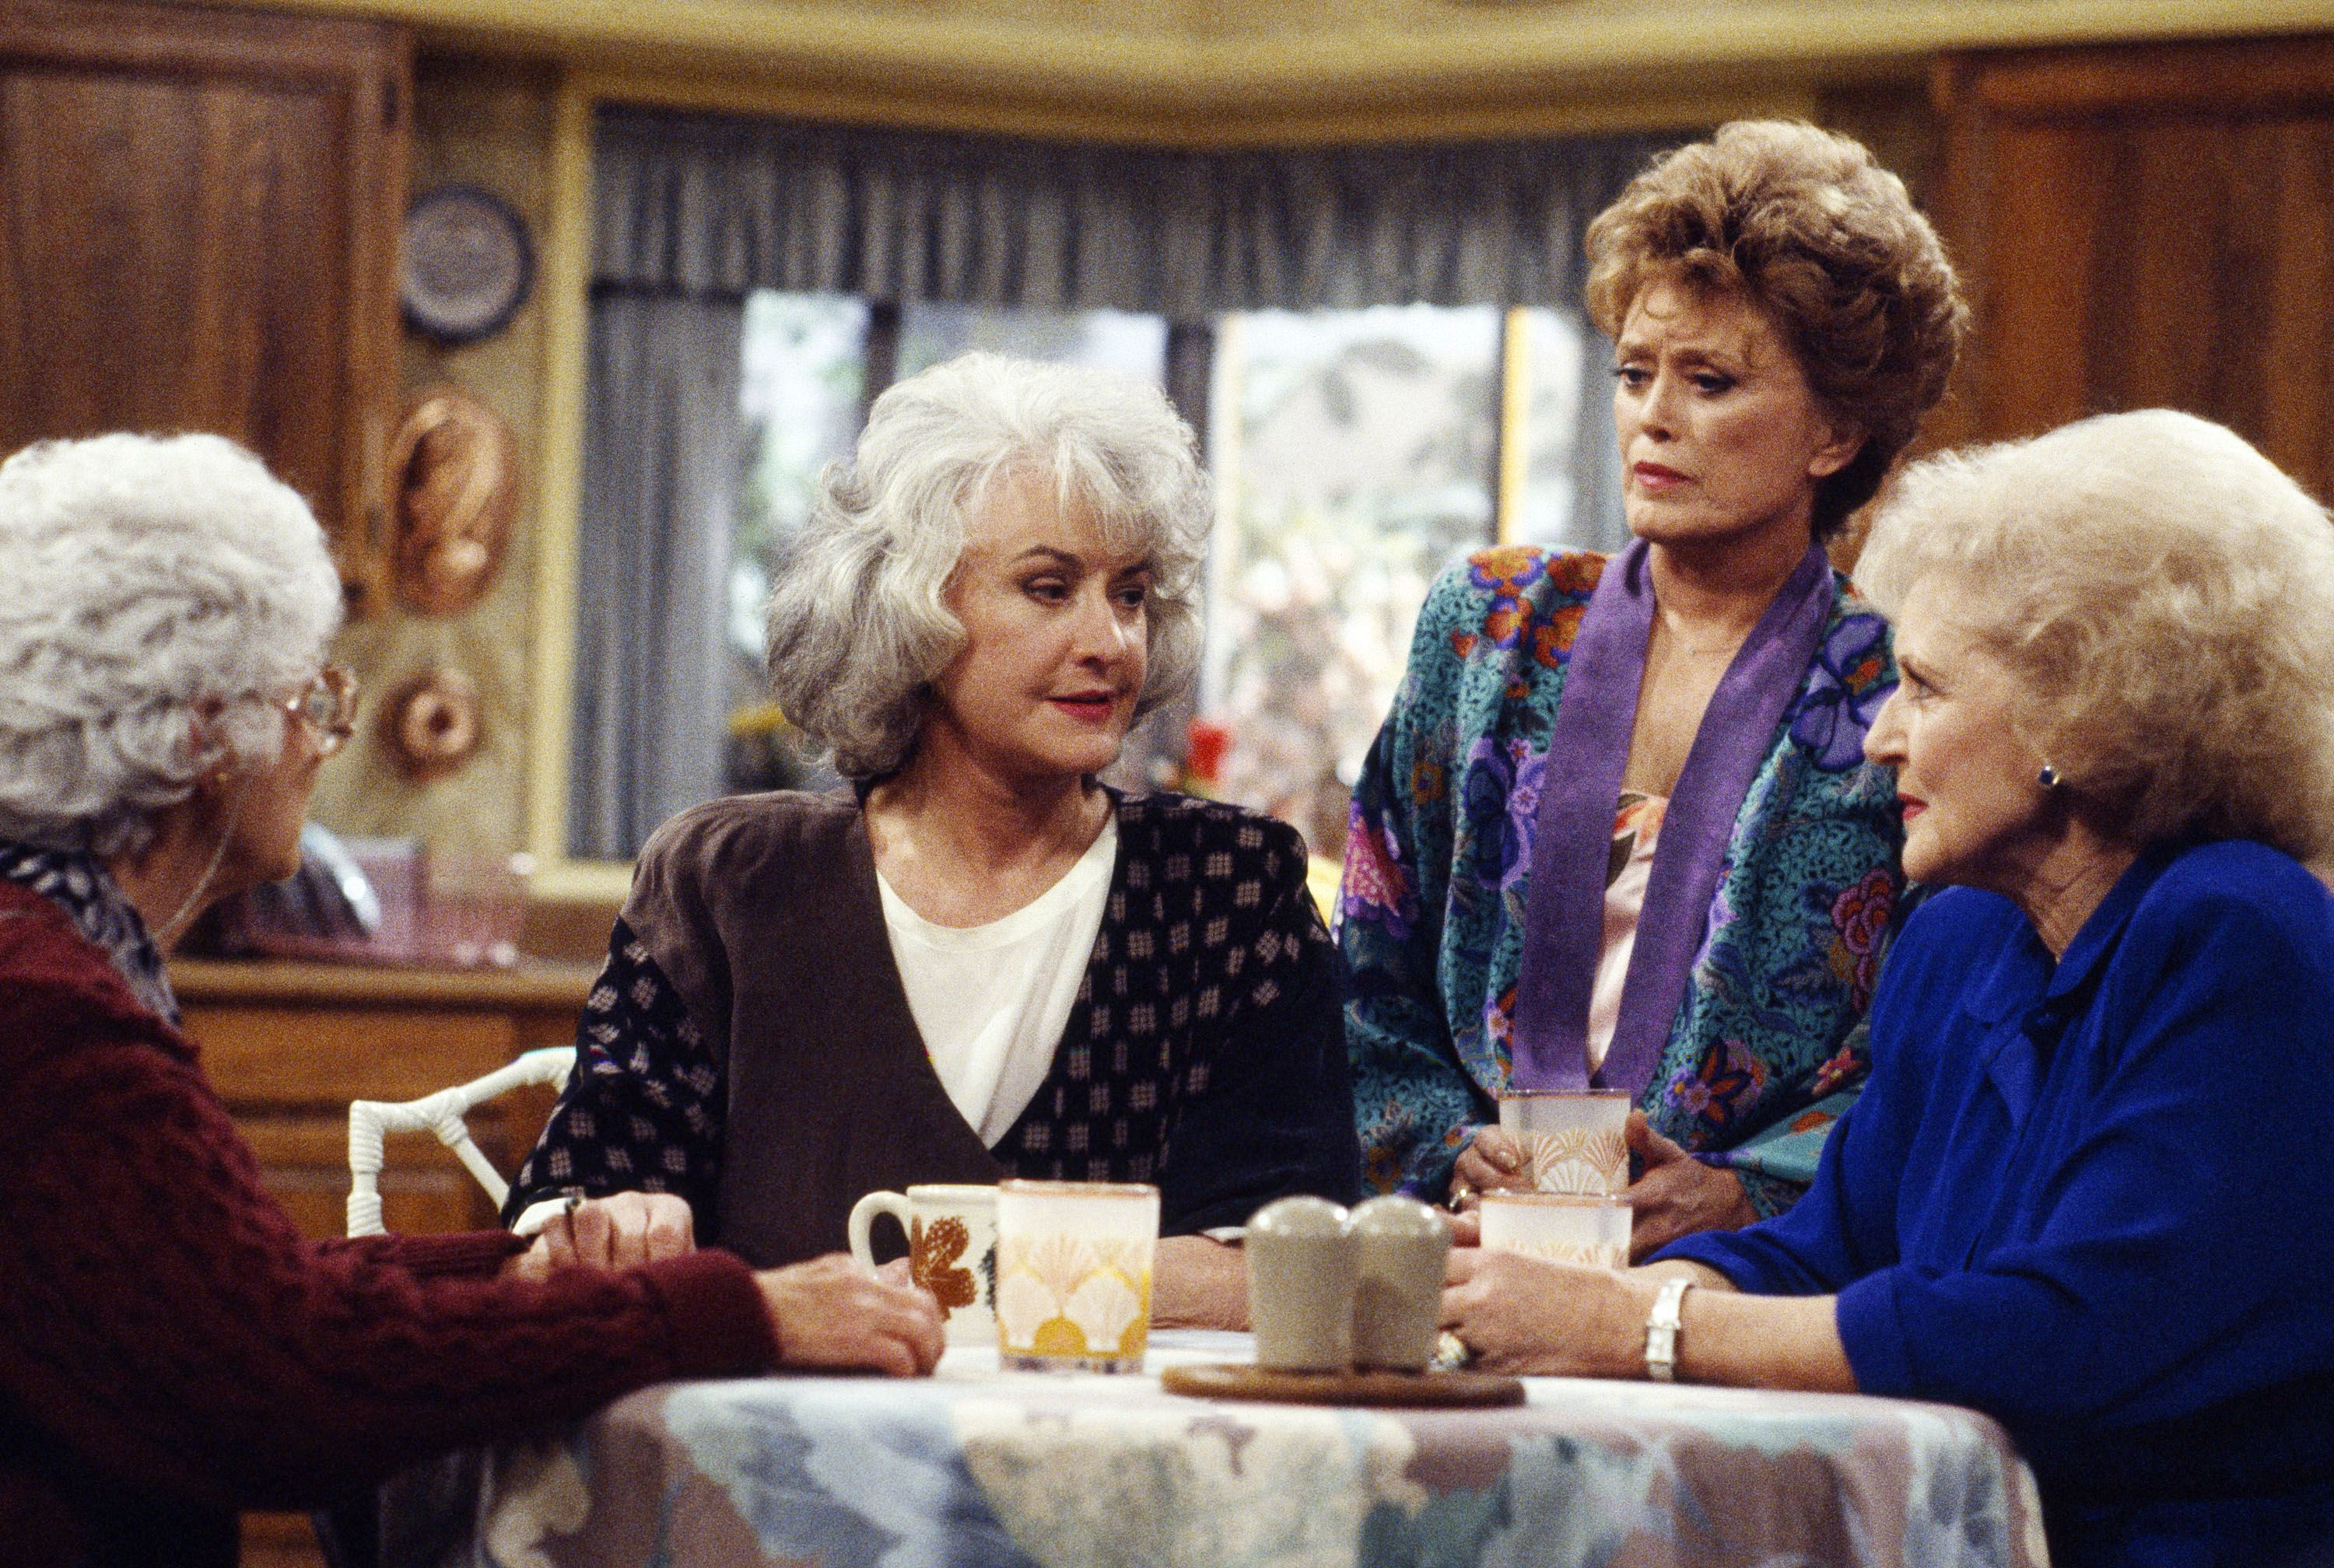 The Golden Girls cafe is now open in NYC